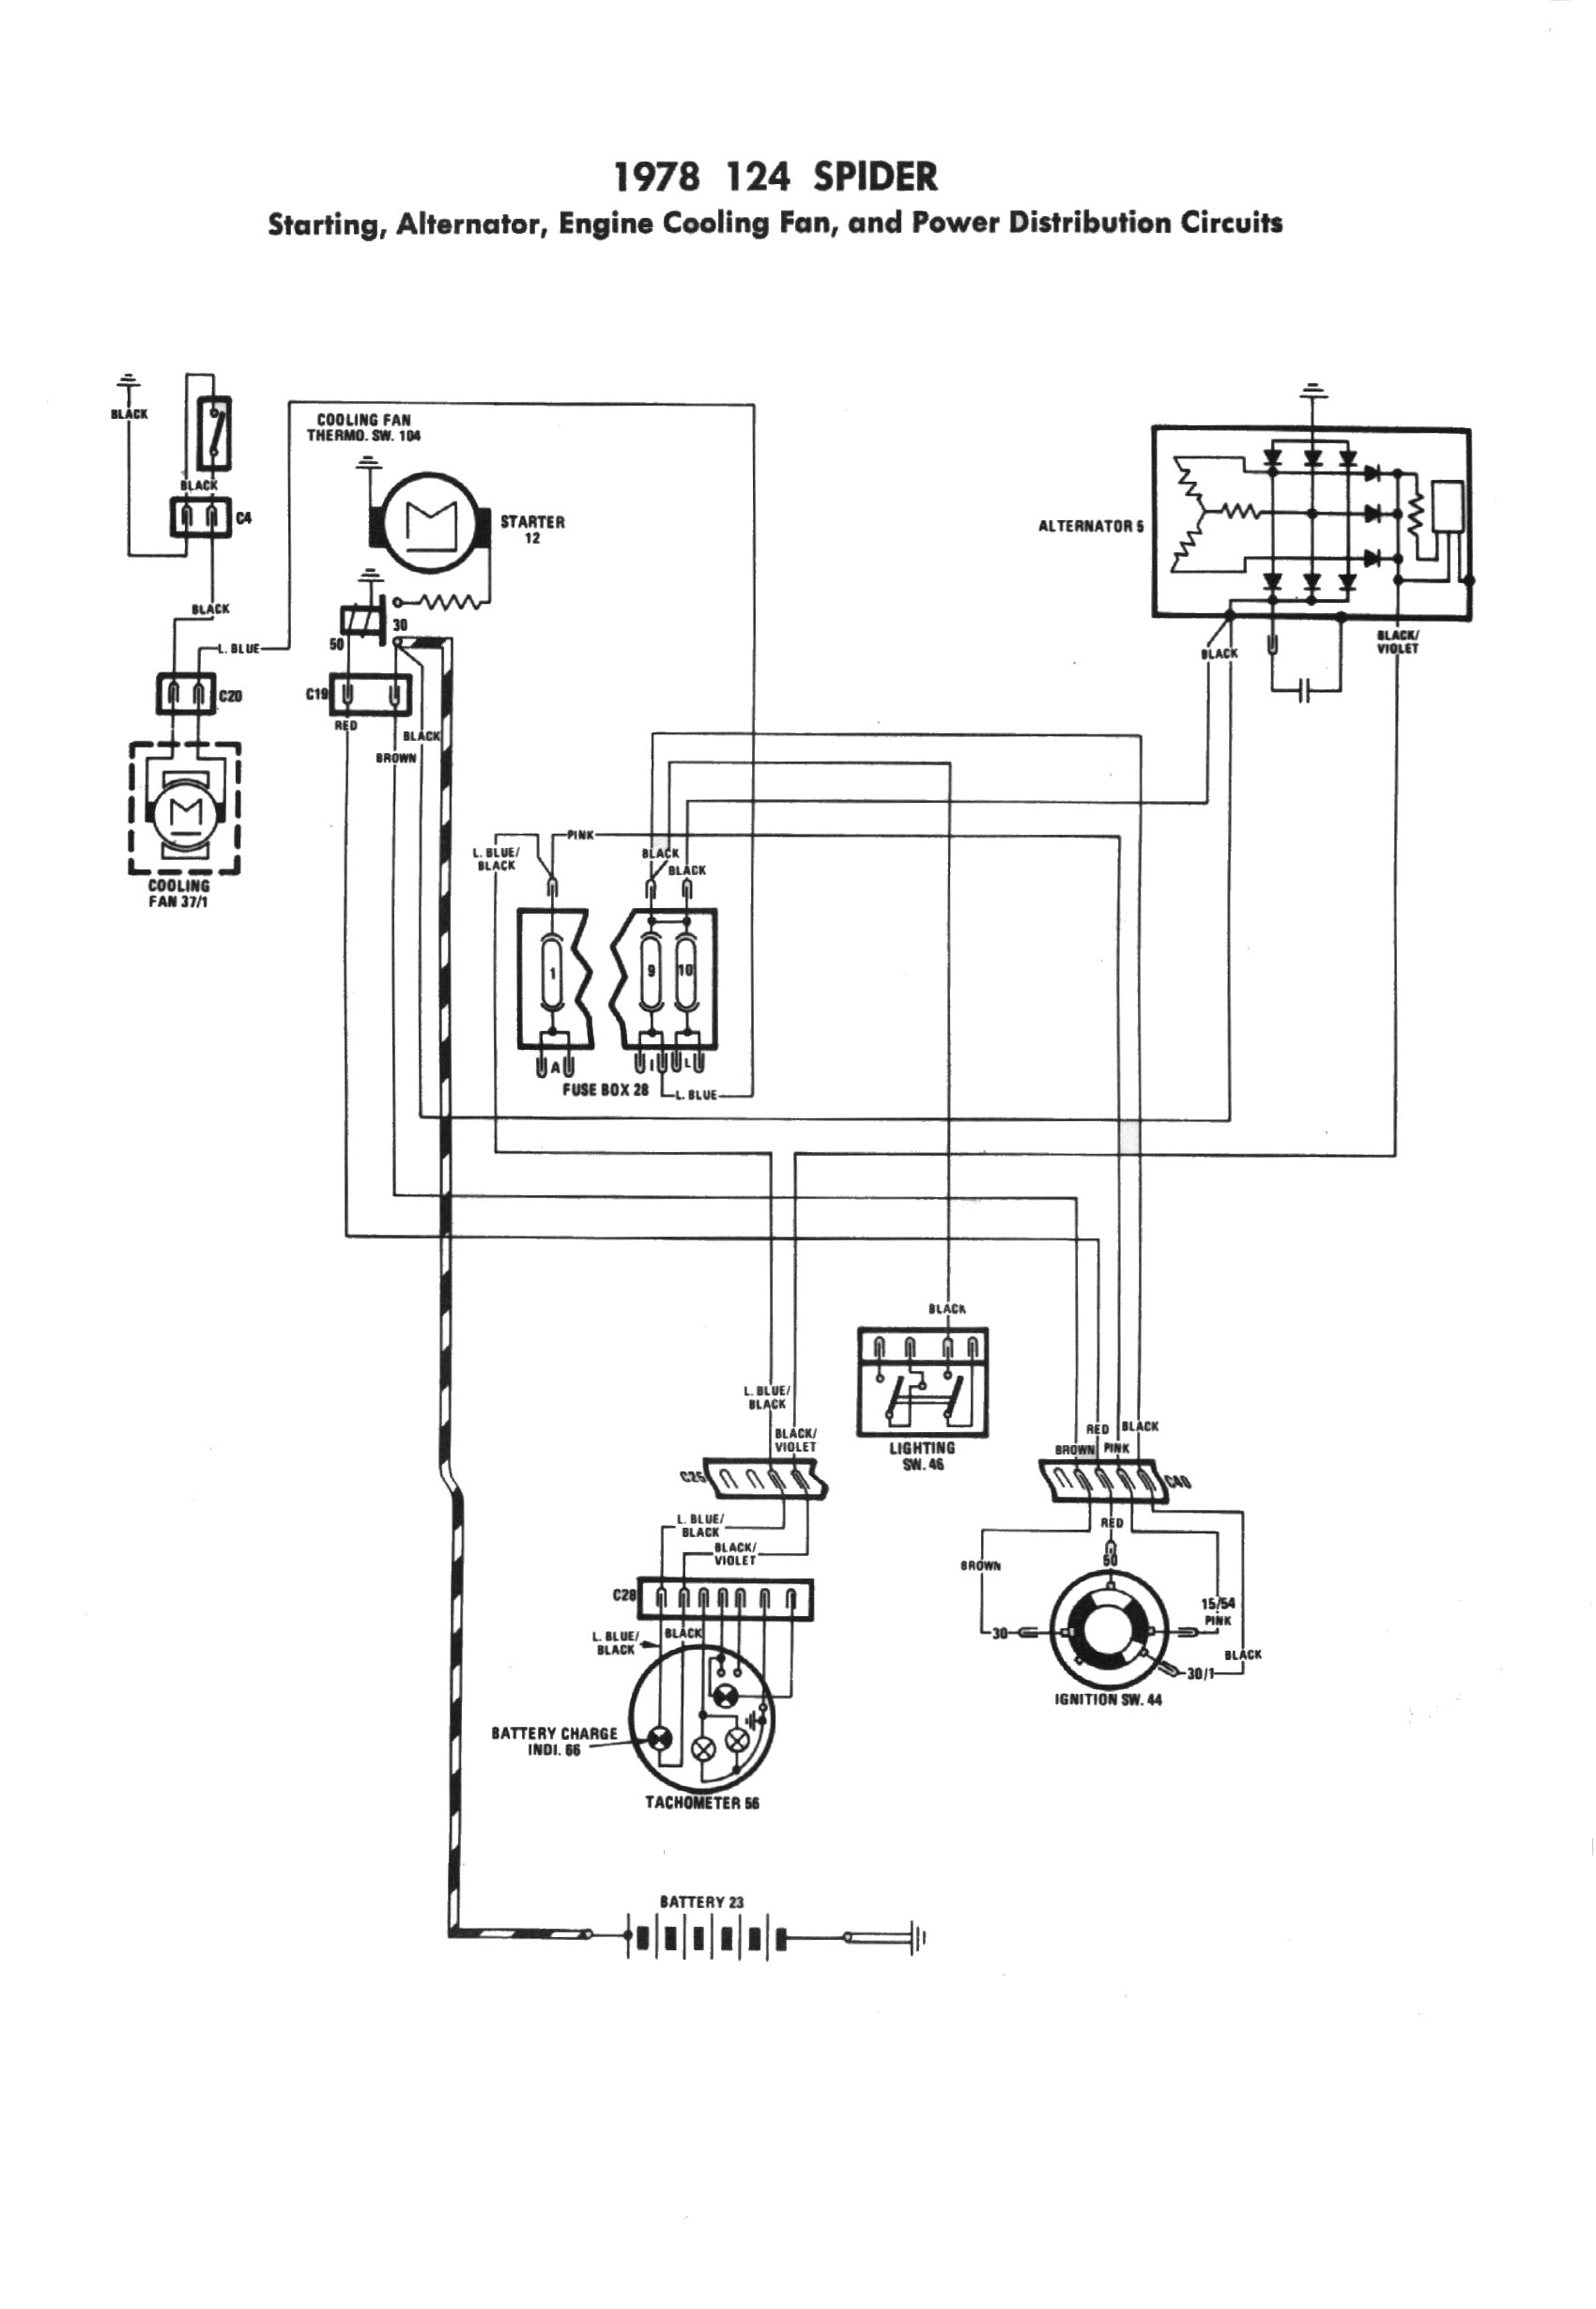 engine cooling fan diagram